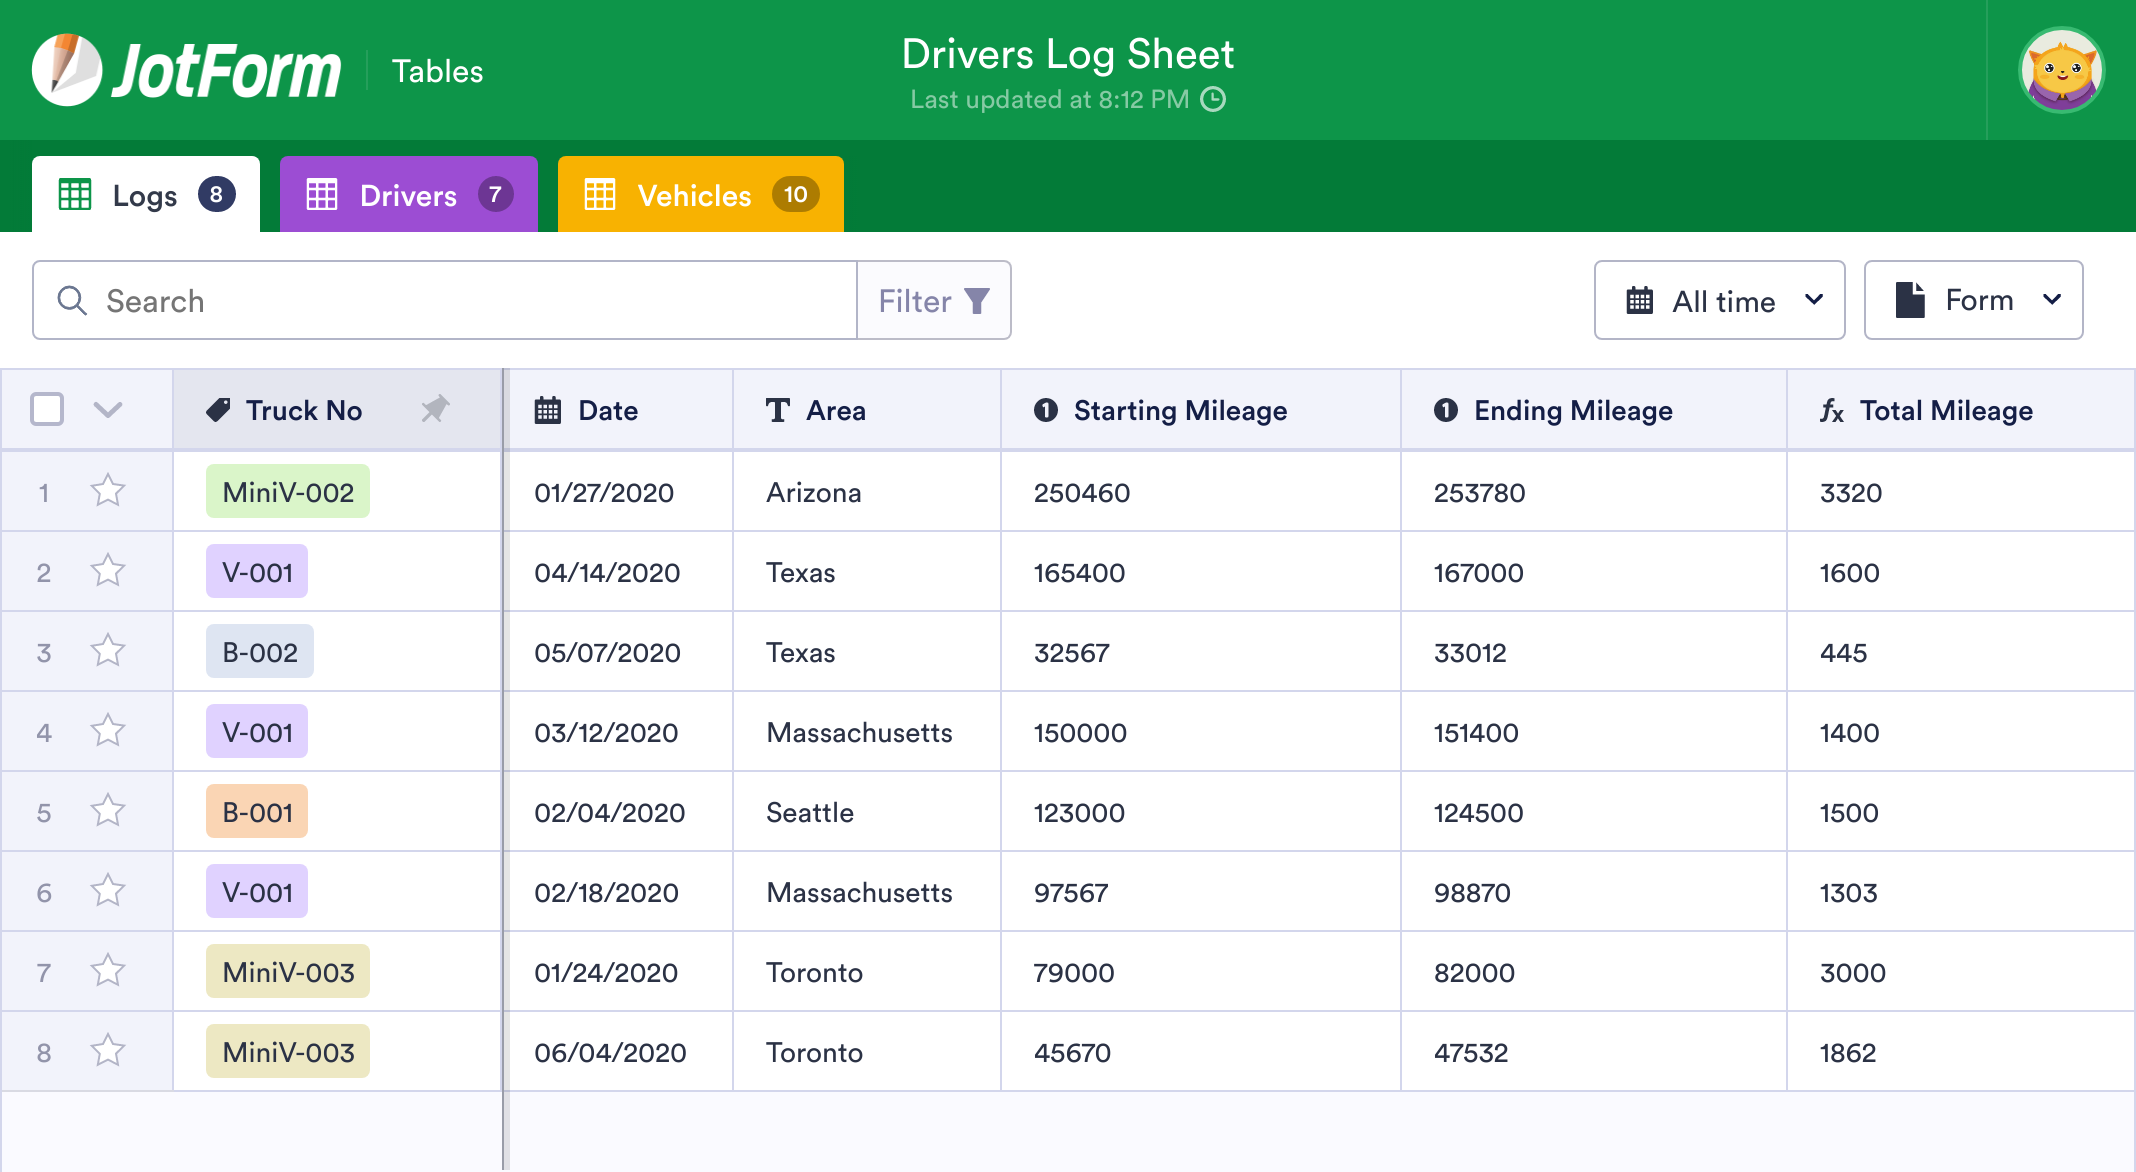 Drivers Log Sheet